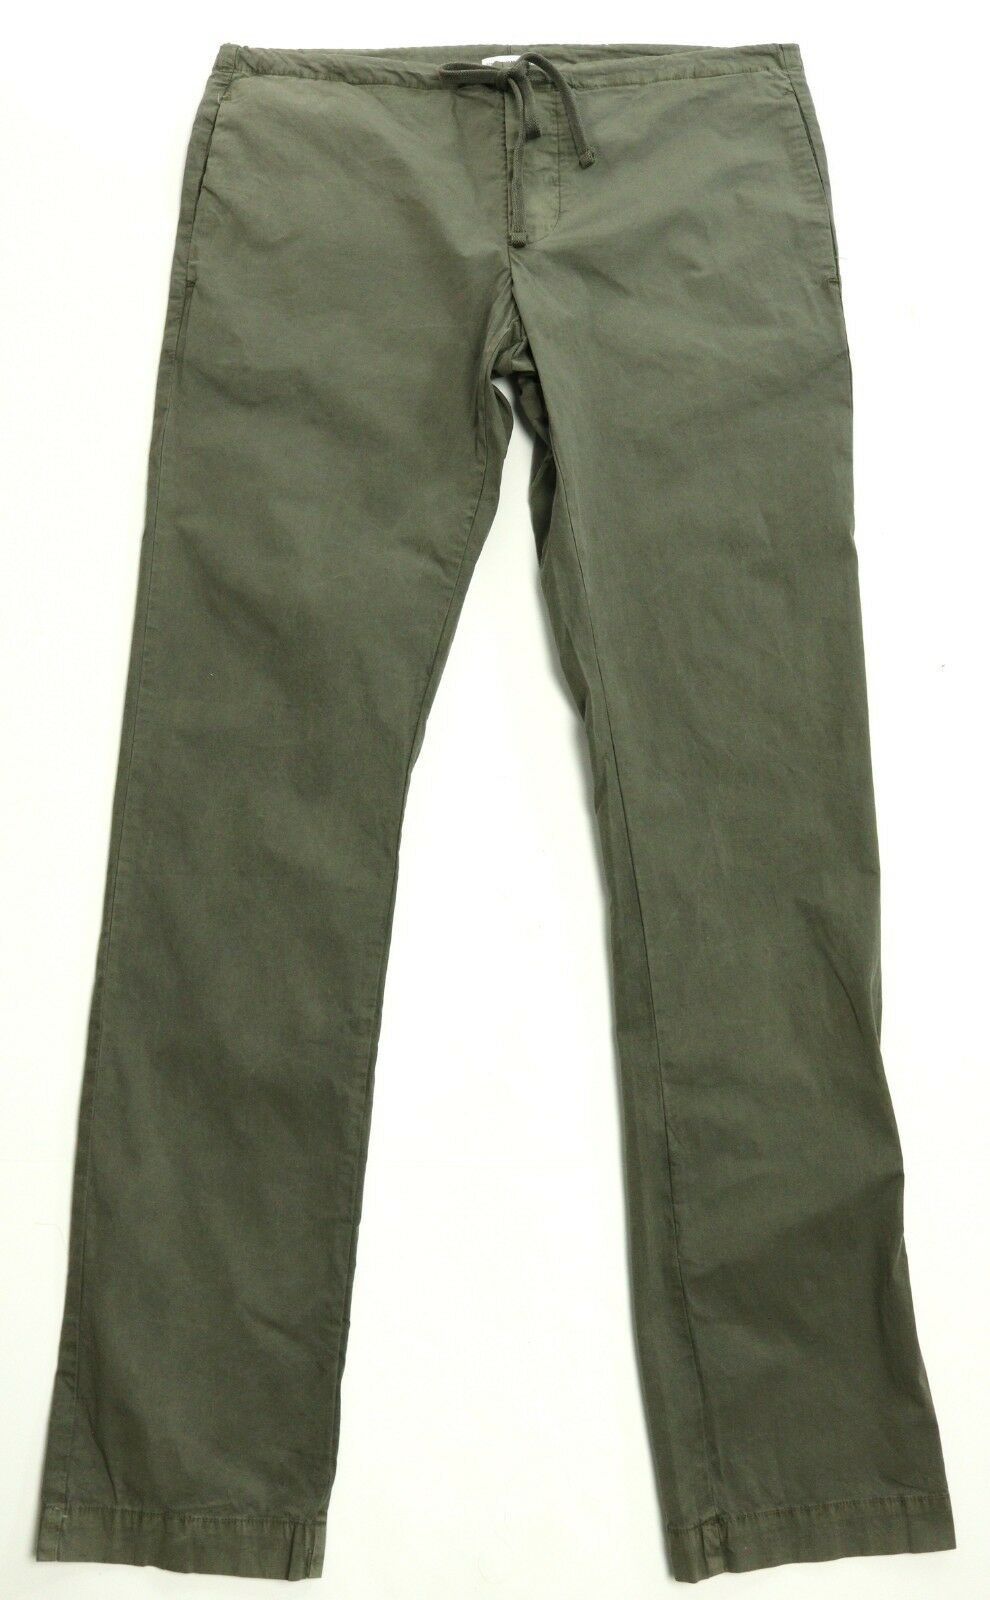 New Womens James Perse Standard Fit Olive Drawstring Pants 0